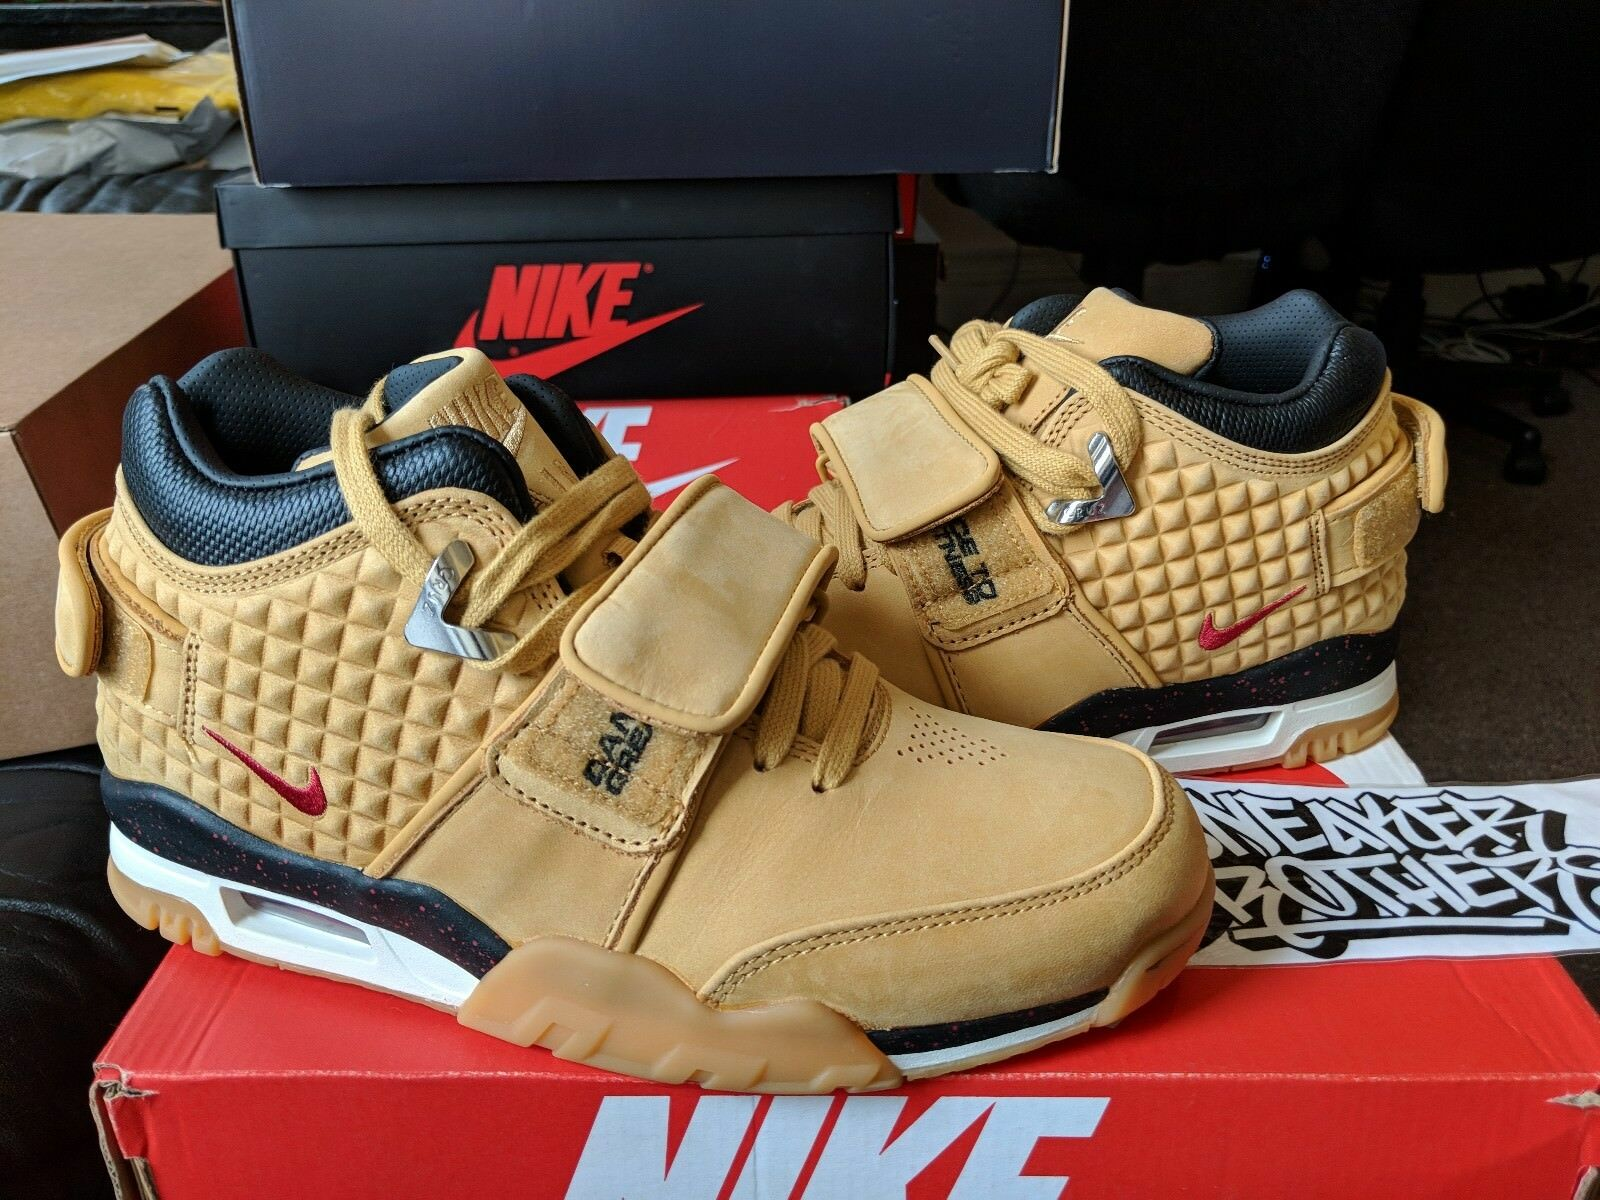 Nike Air Trainer Victor Cruz PRM Premium Haystack Wheat Gym Red Black 812637-700 Special limited time